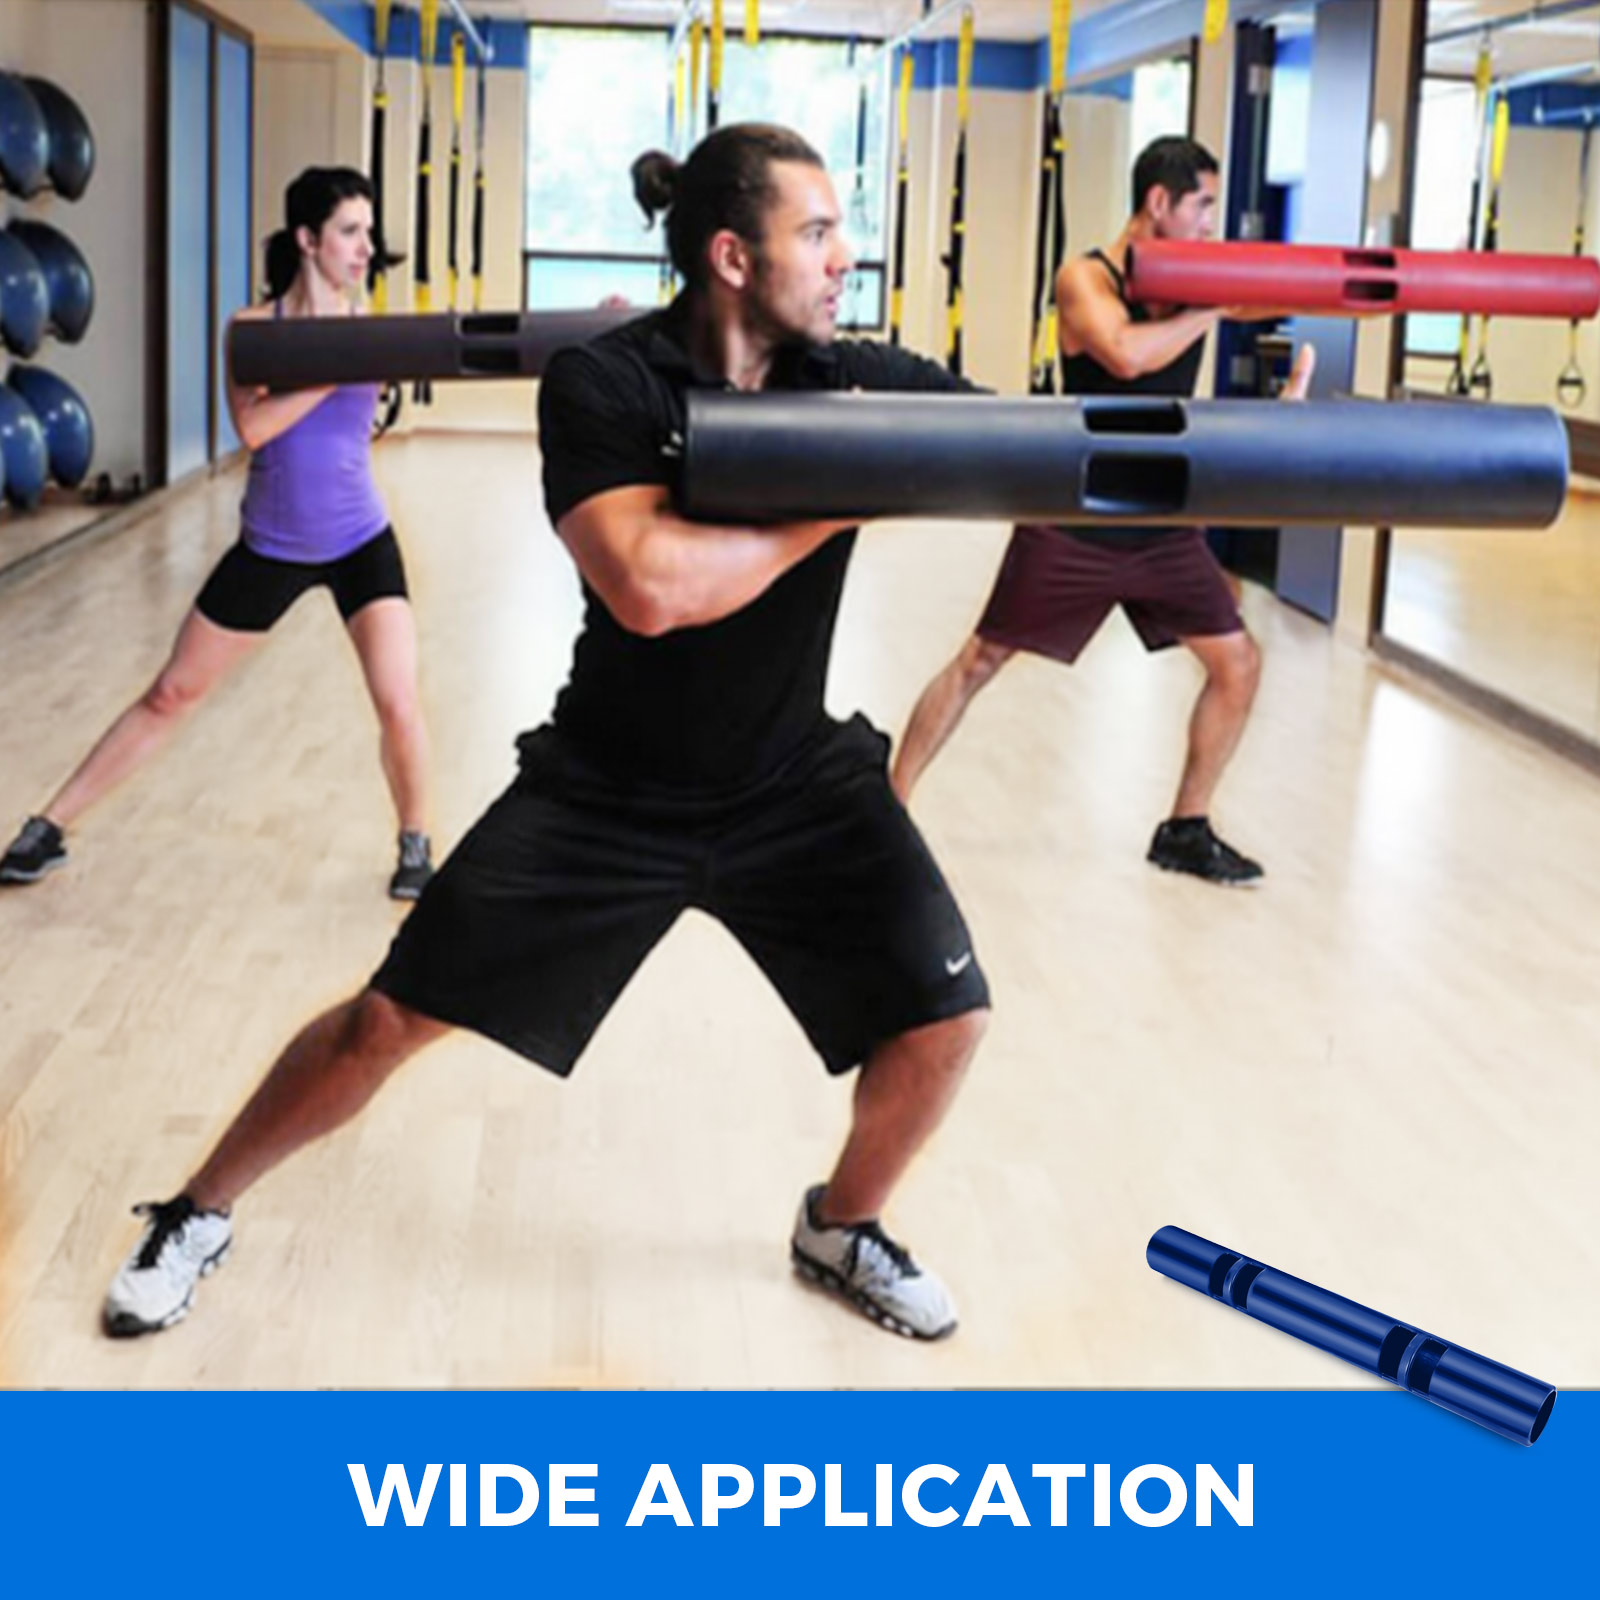 Vipr-Fitpro-Fitness-Tube-Loaded-Movement-Training-weightlifting-4-6-8-10-12-Kg thumbnail 259